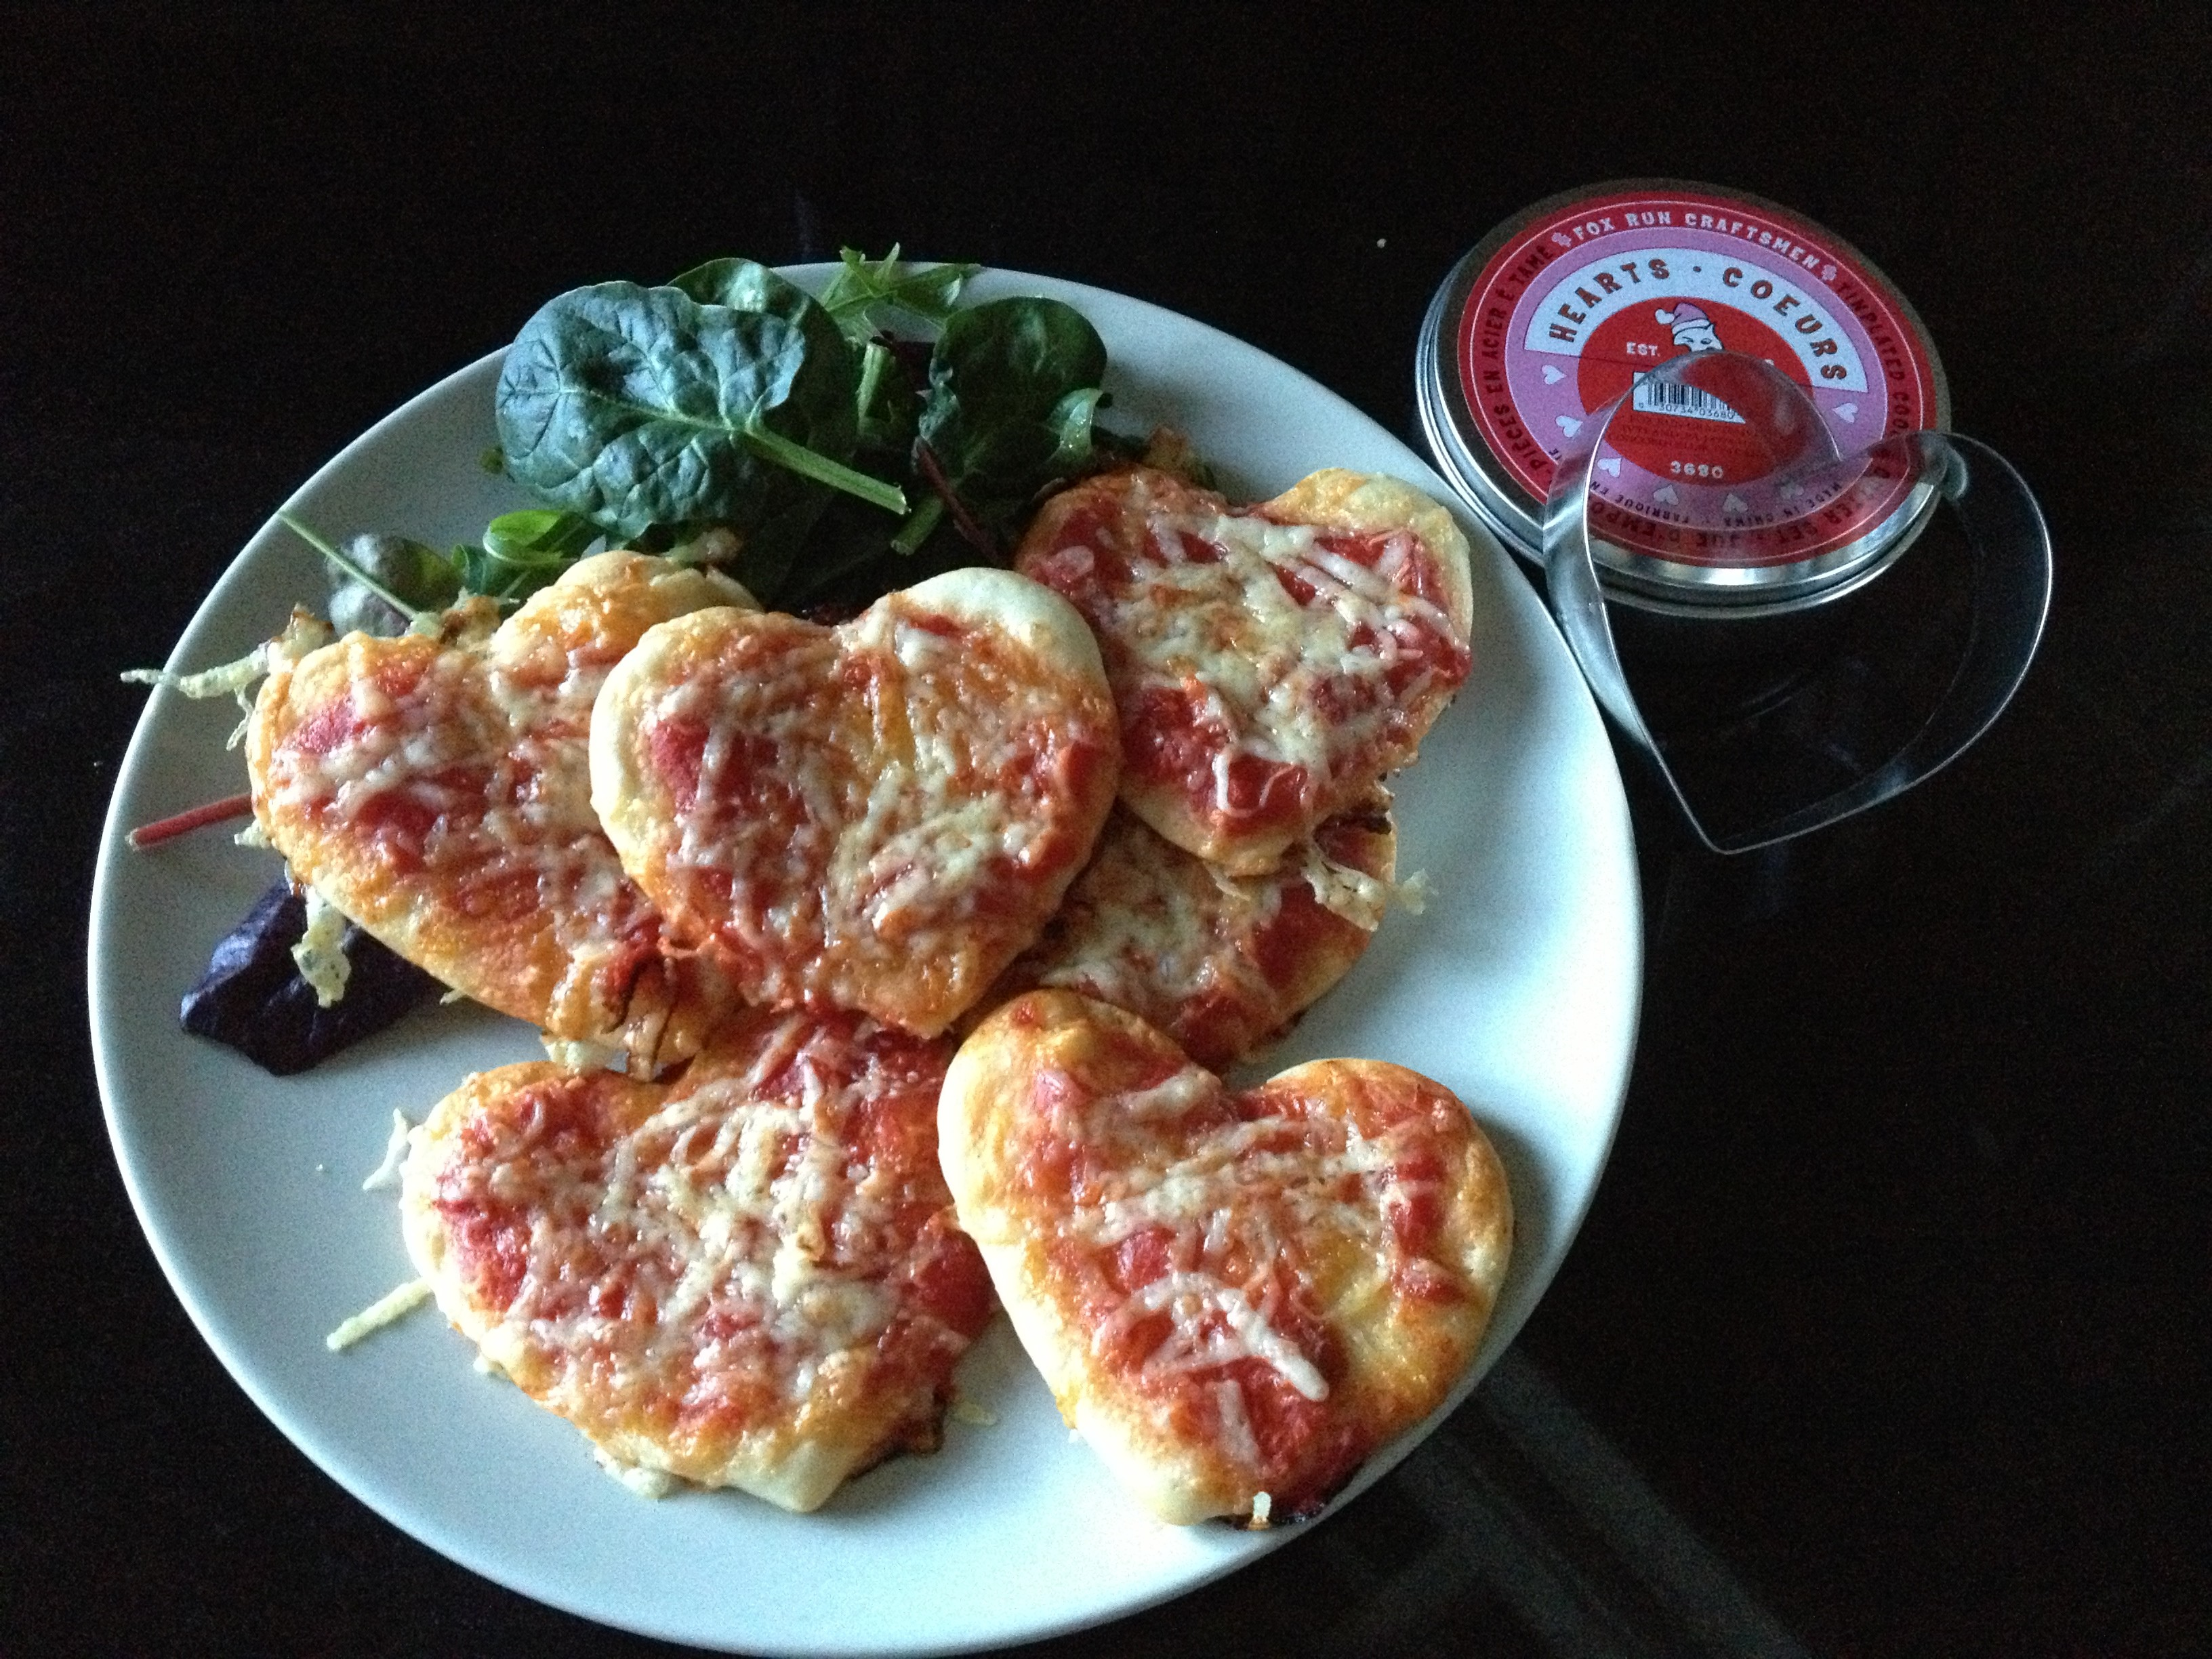 pizzahearts